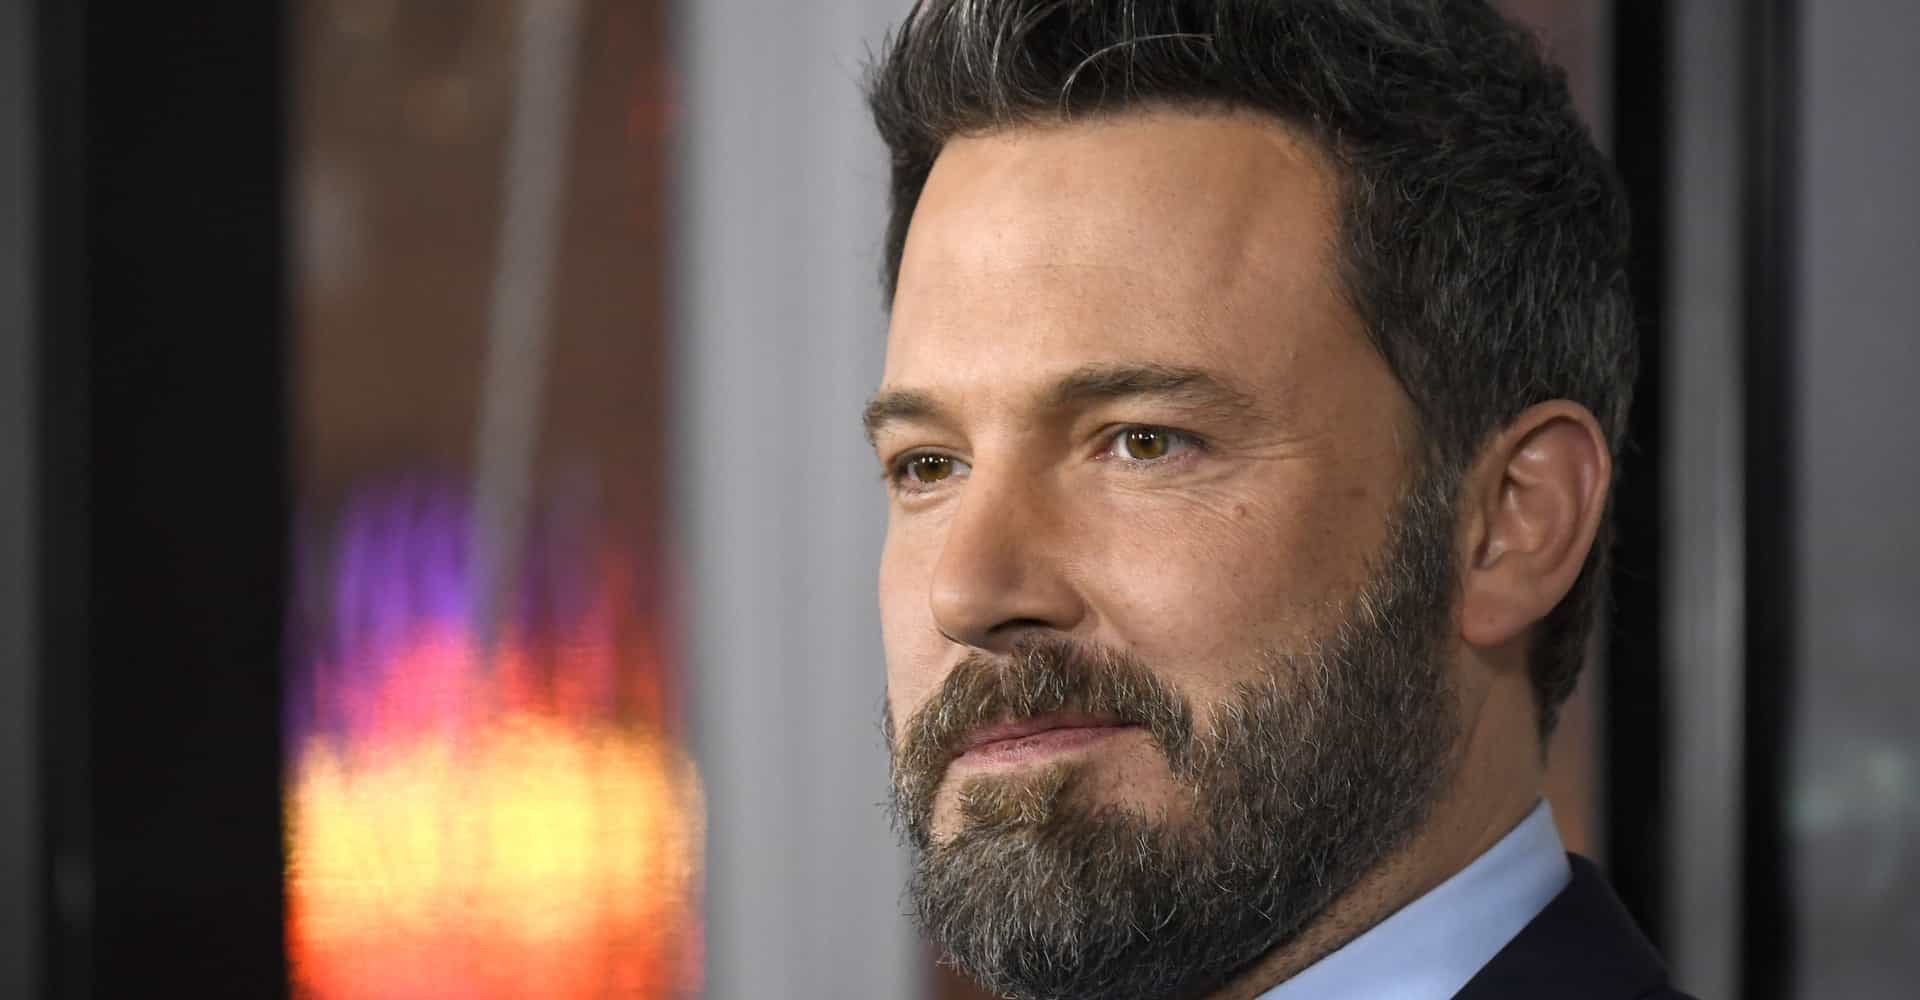 Ben Affleck spotted with Playboy model—while longtime girlfriend goes offline